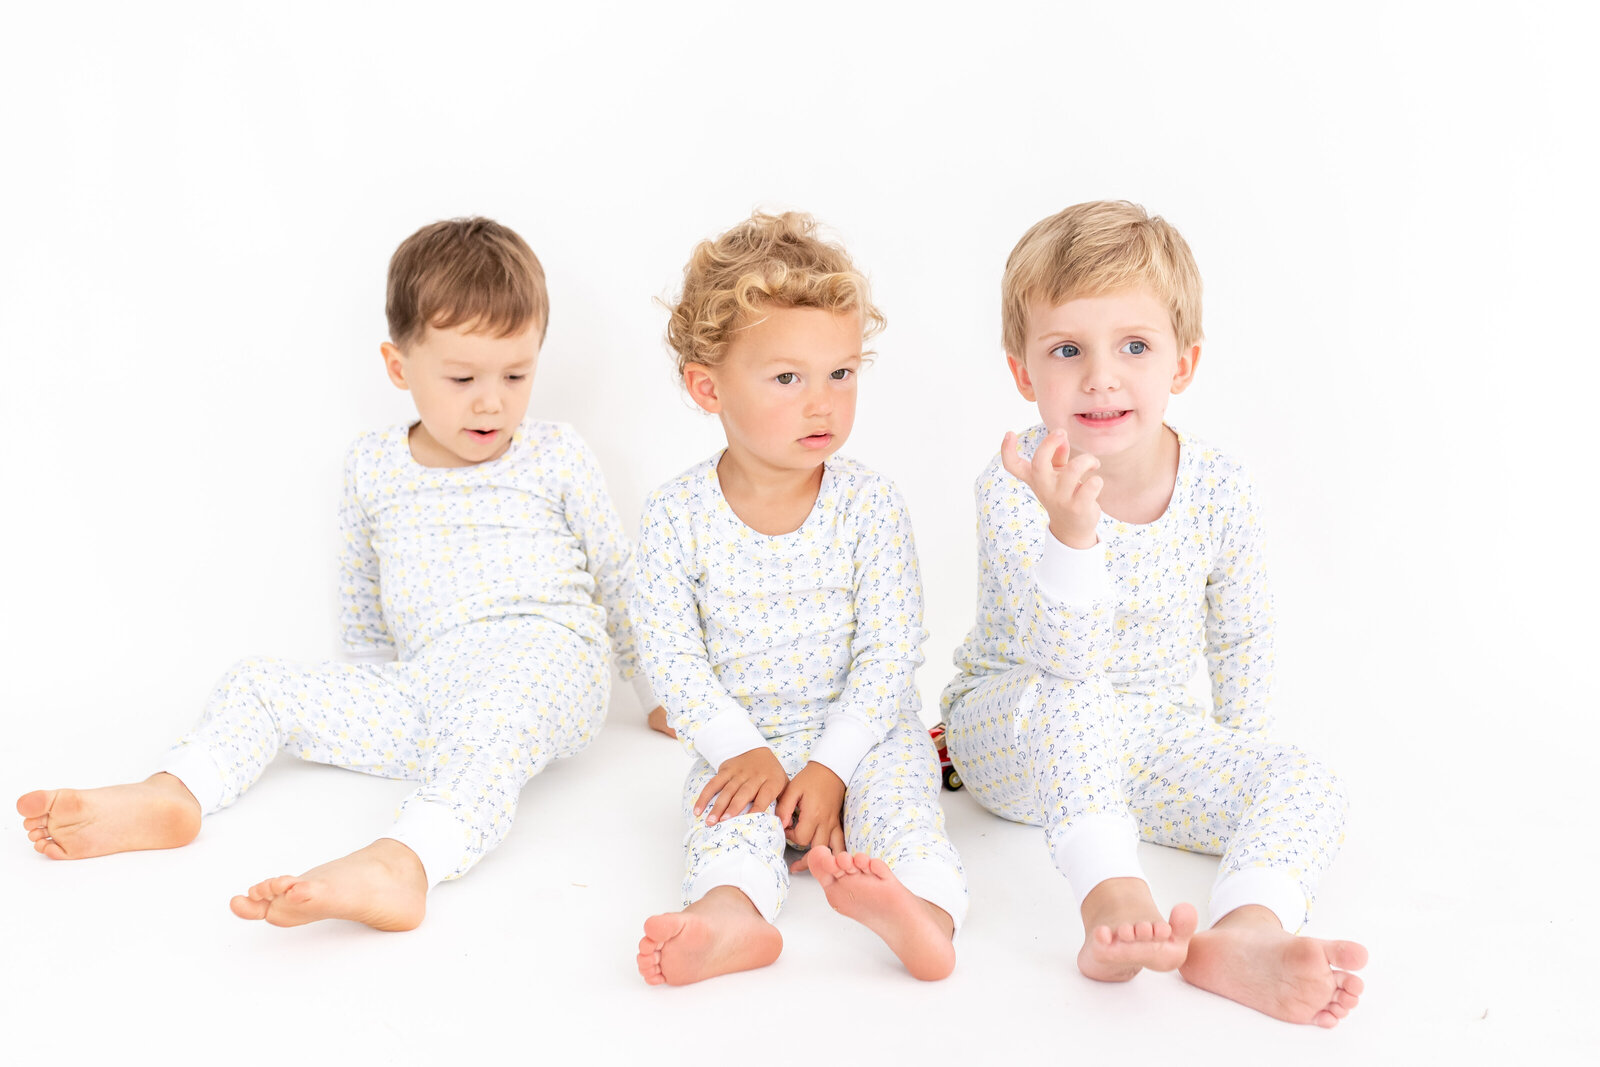 Three little boys wearing pjs